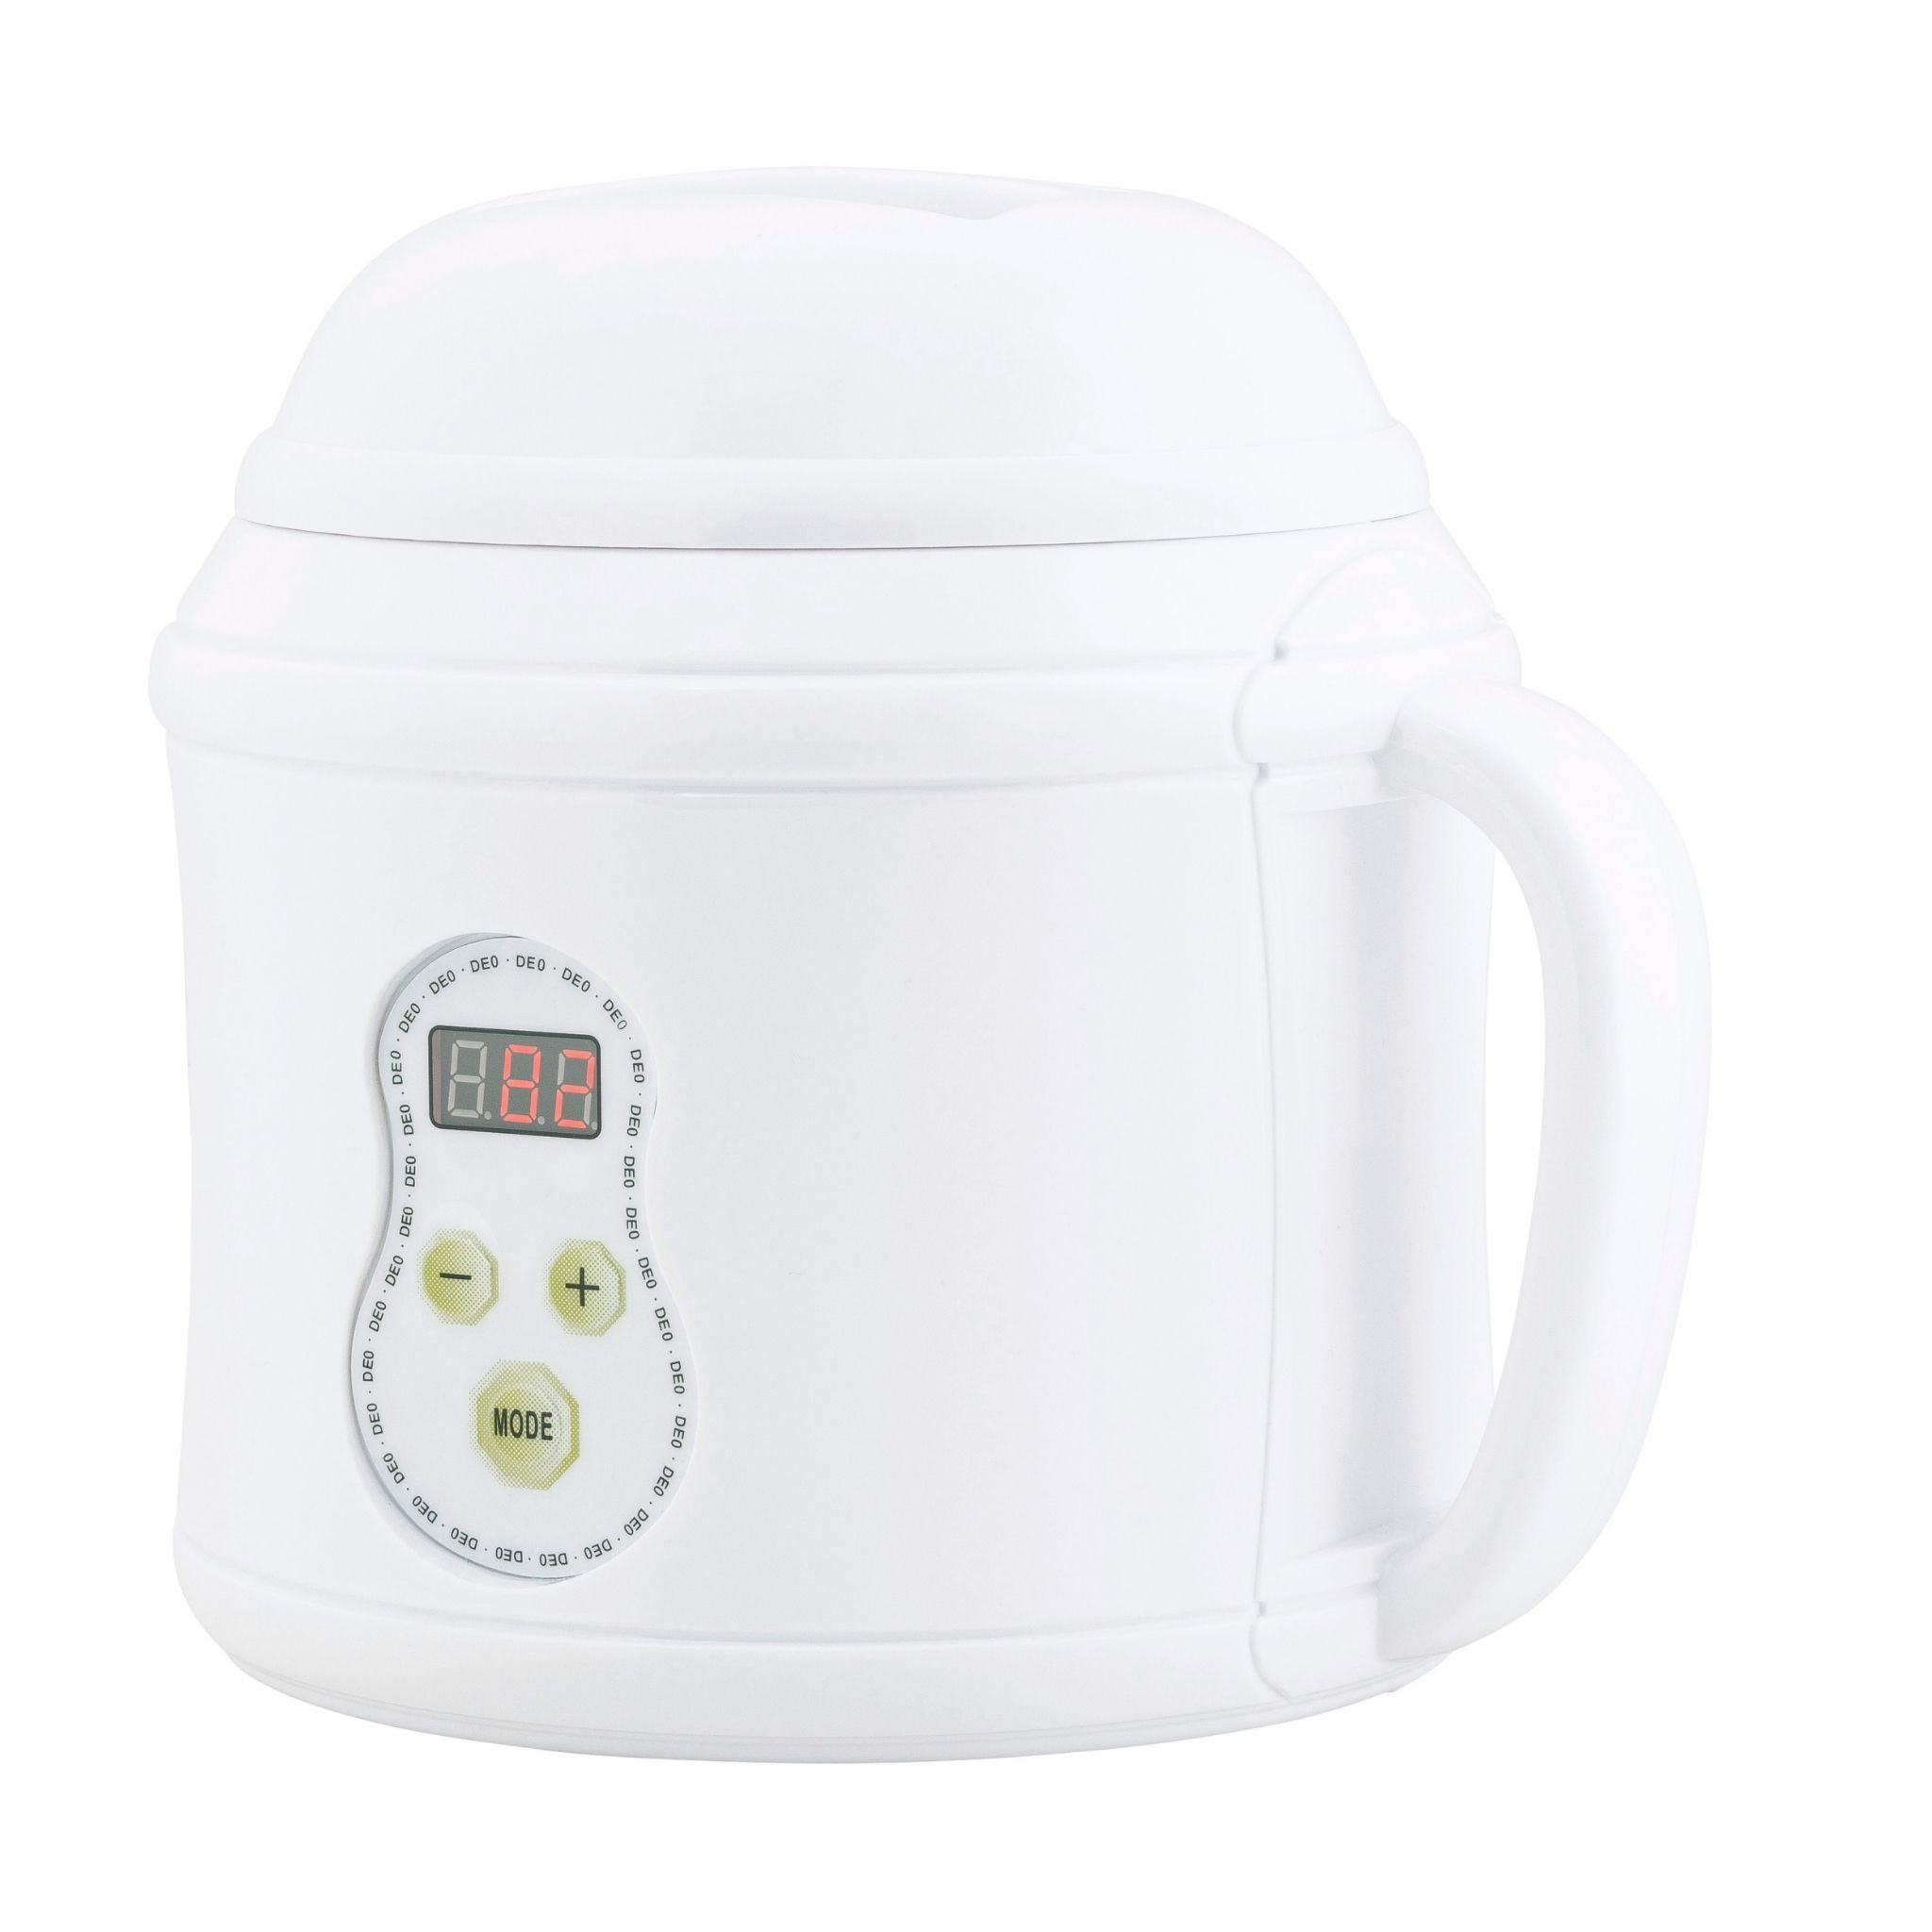 Wax Warmer | Digital Small, holds 1-lb